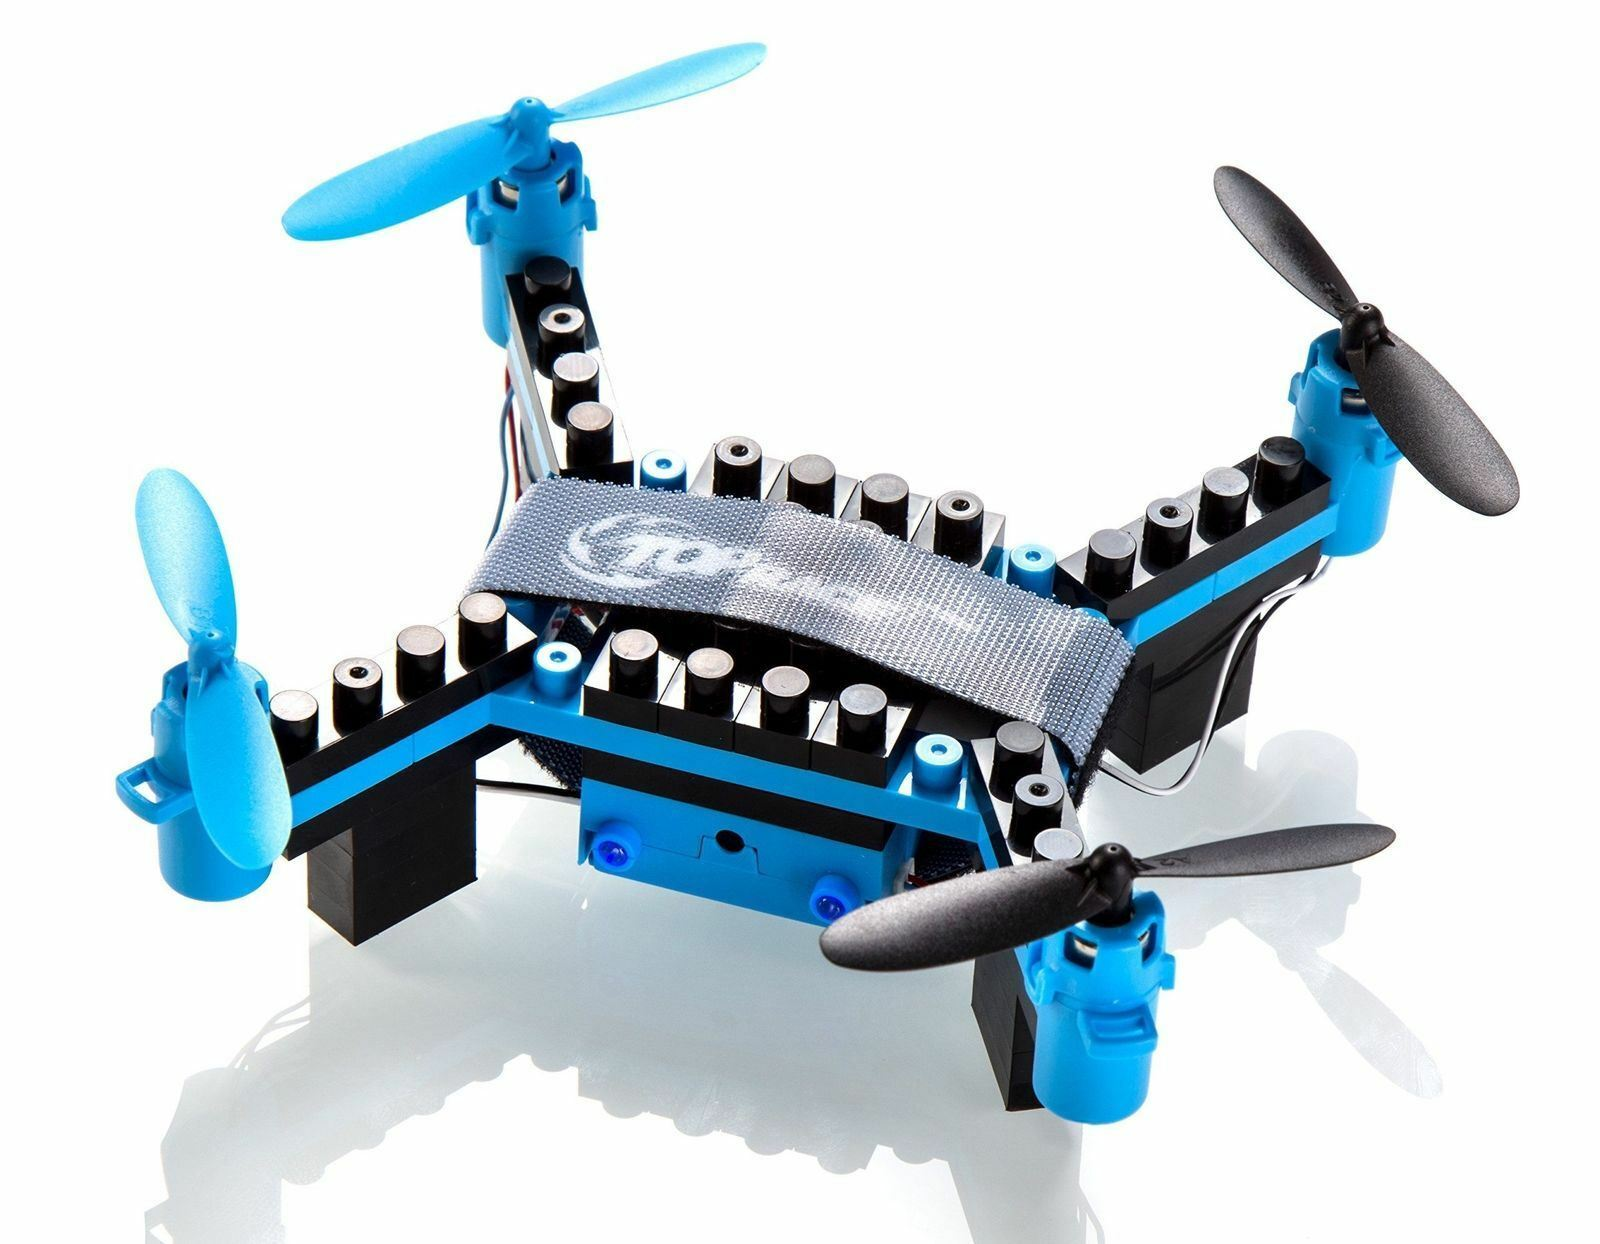 bluee Drone Quadcopter Quadcopter Quadcopter 2.4GHz Remote Control with Flexible Control Movement c4365d